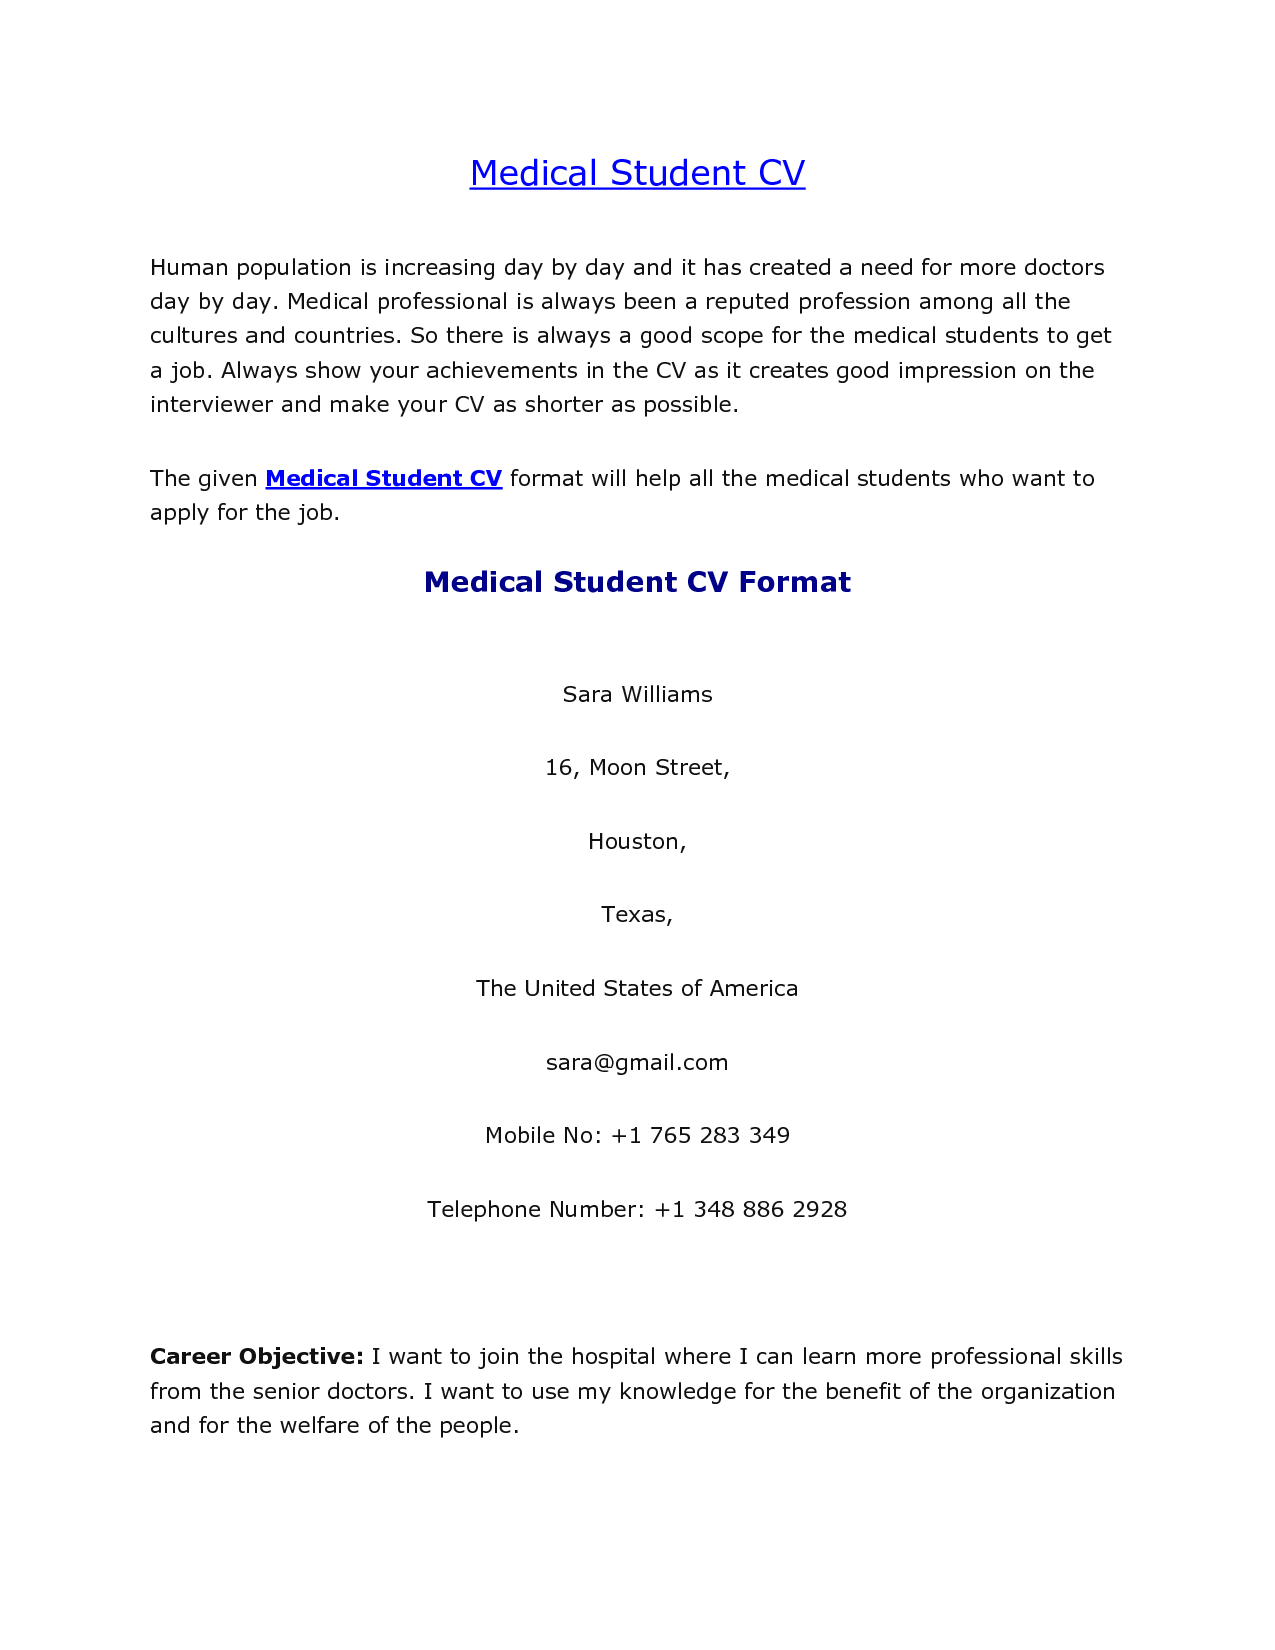 Medical Student CV Sample  Medical Resume Template